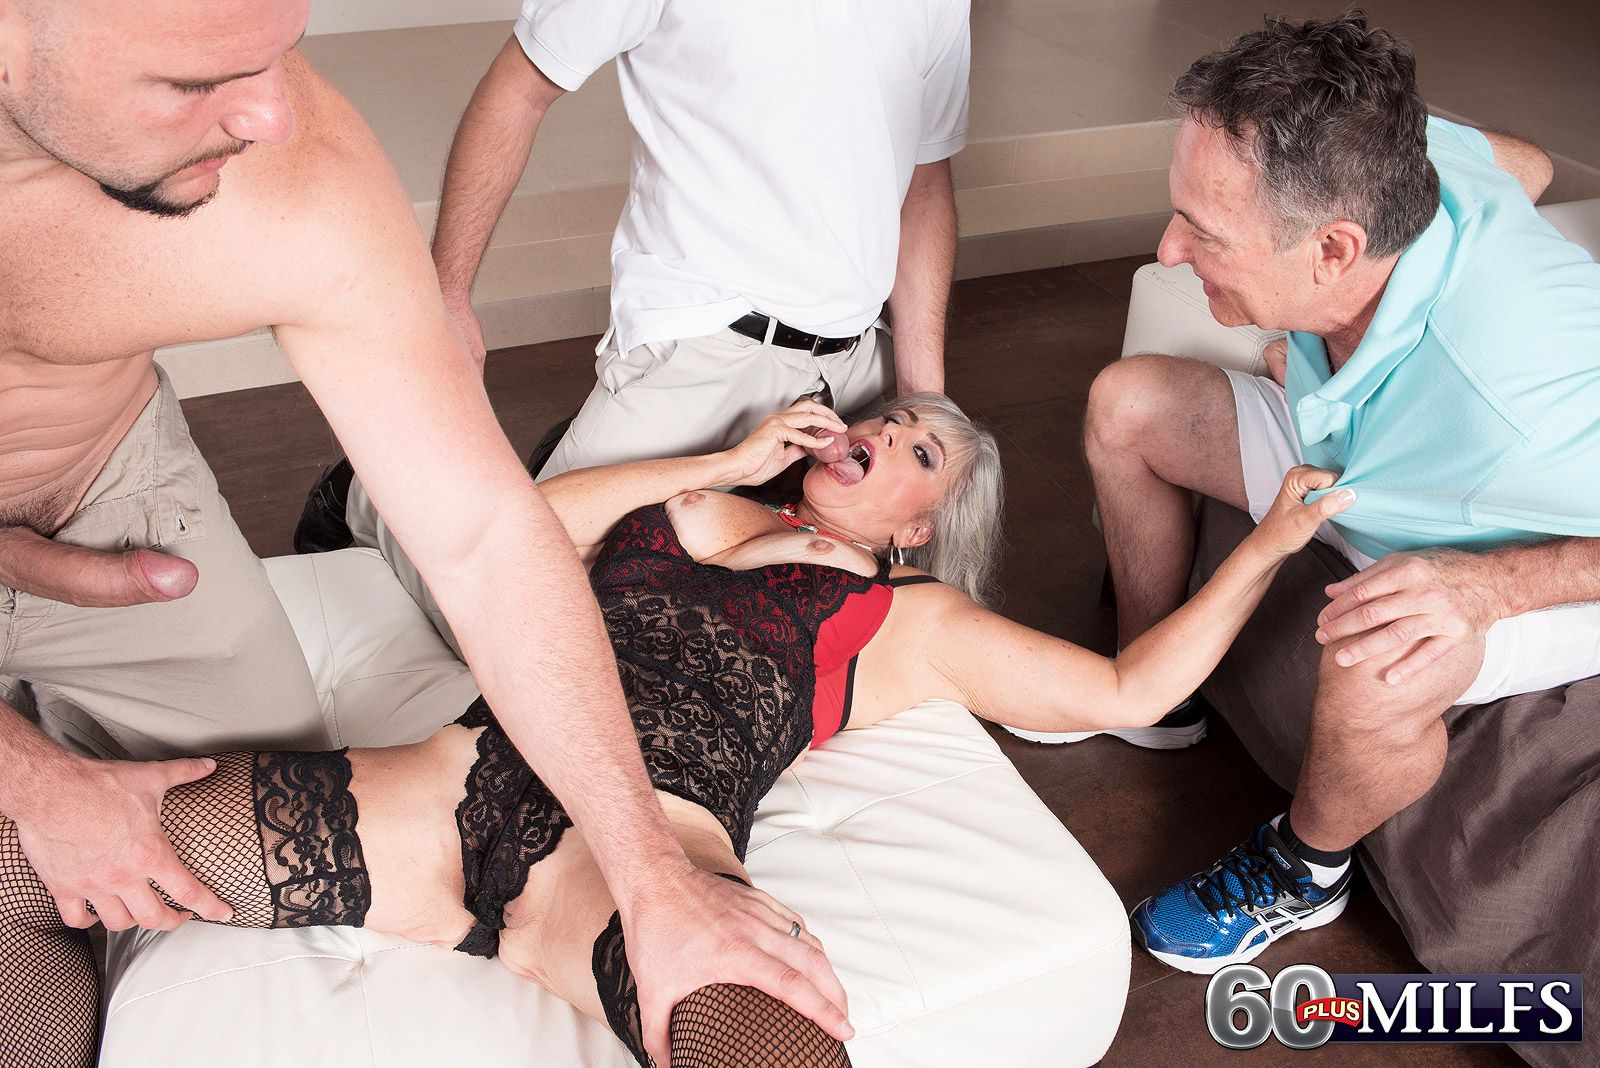 Mature MILF Silva Foxx blows 2 big white dicks to her cuckolded hubby's dismay